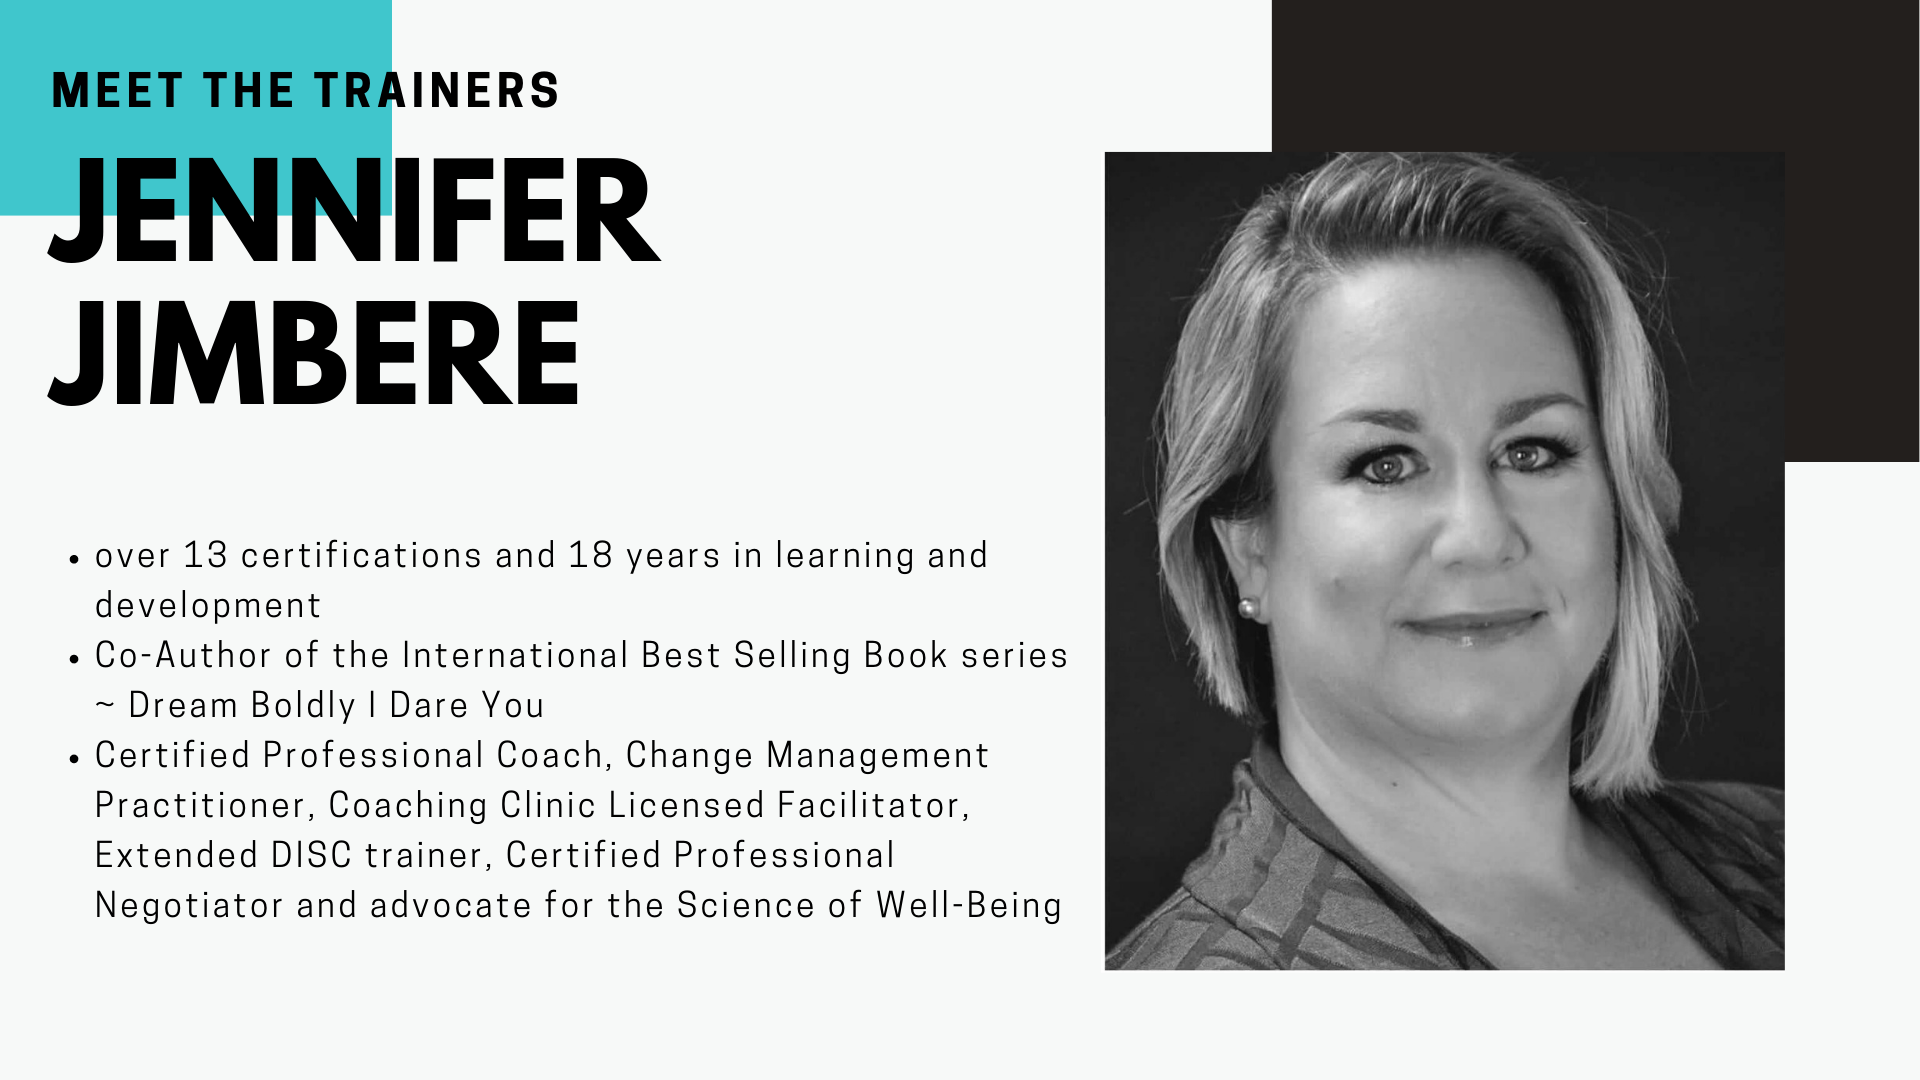 Jennifer Jimbere - Meet the Trainers